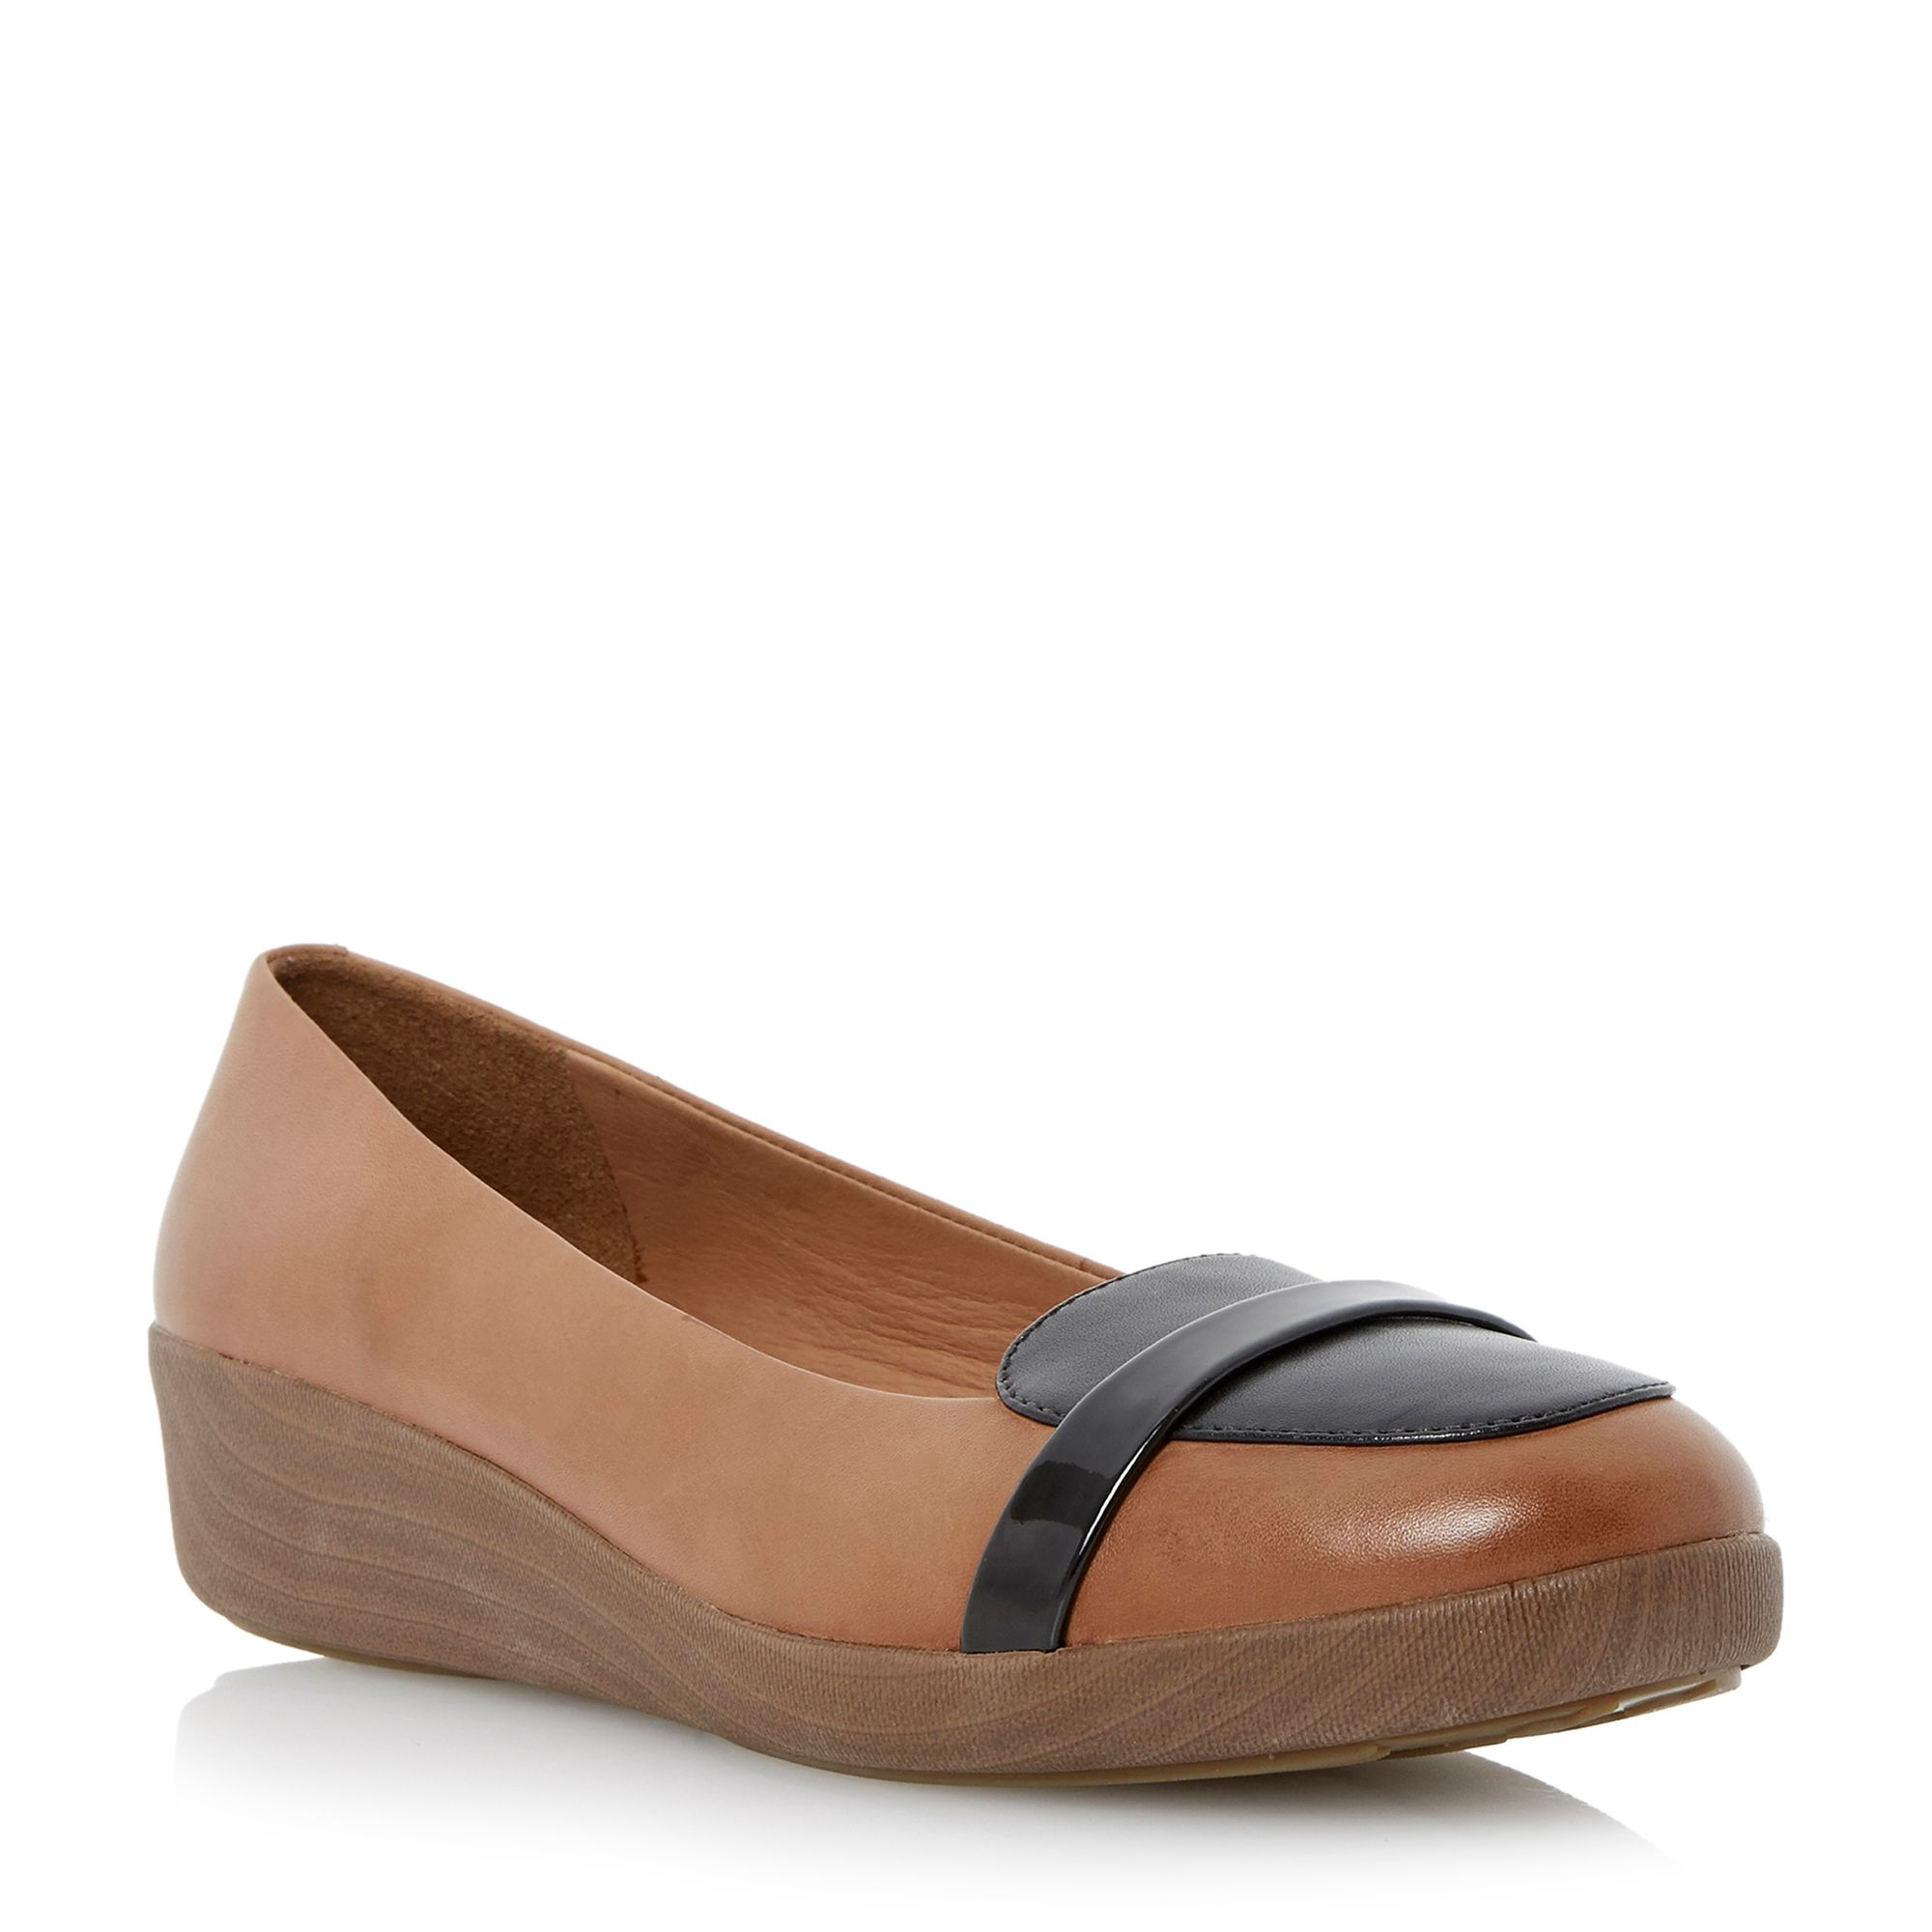 rubber wedge heel shoes house of fraser